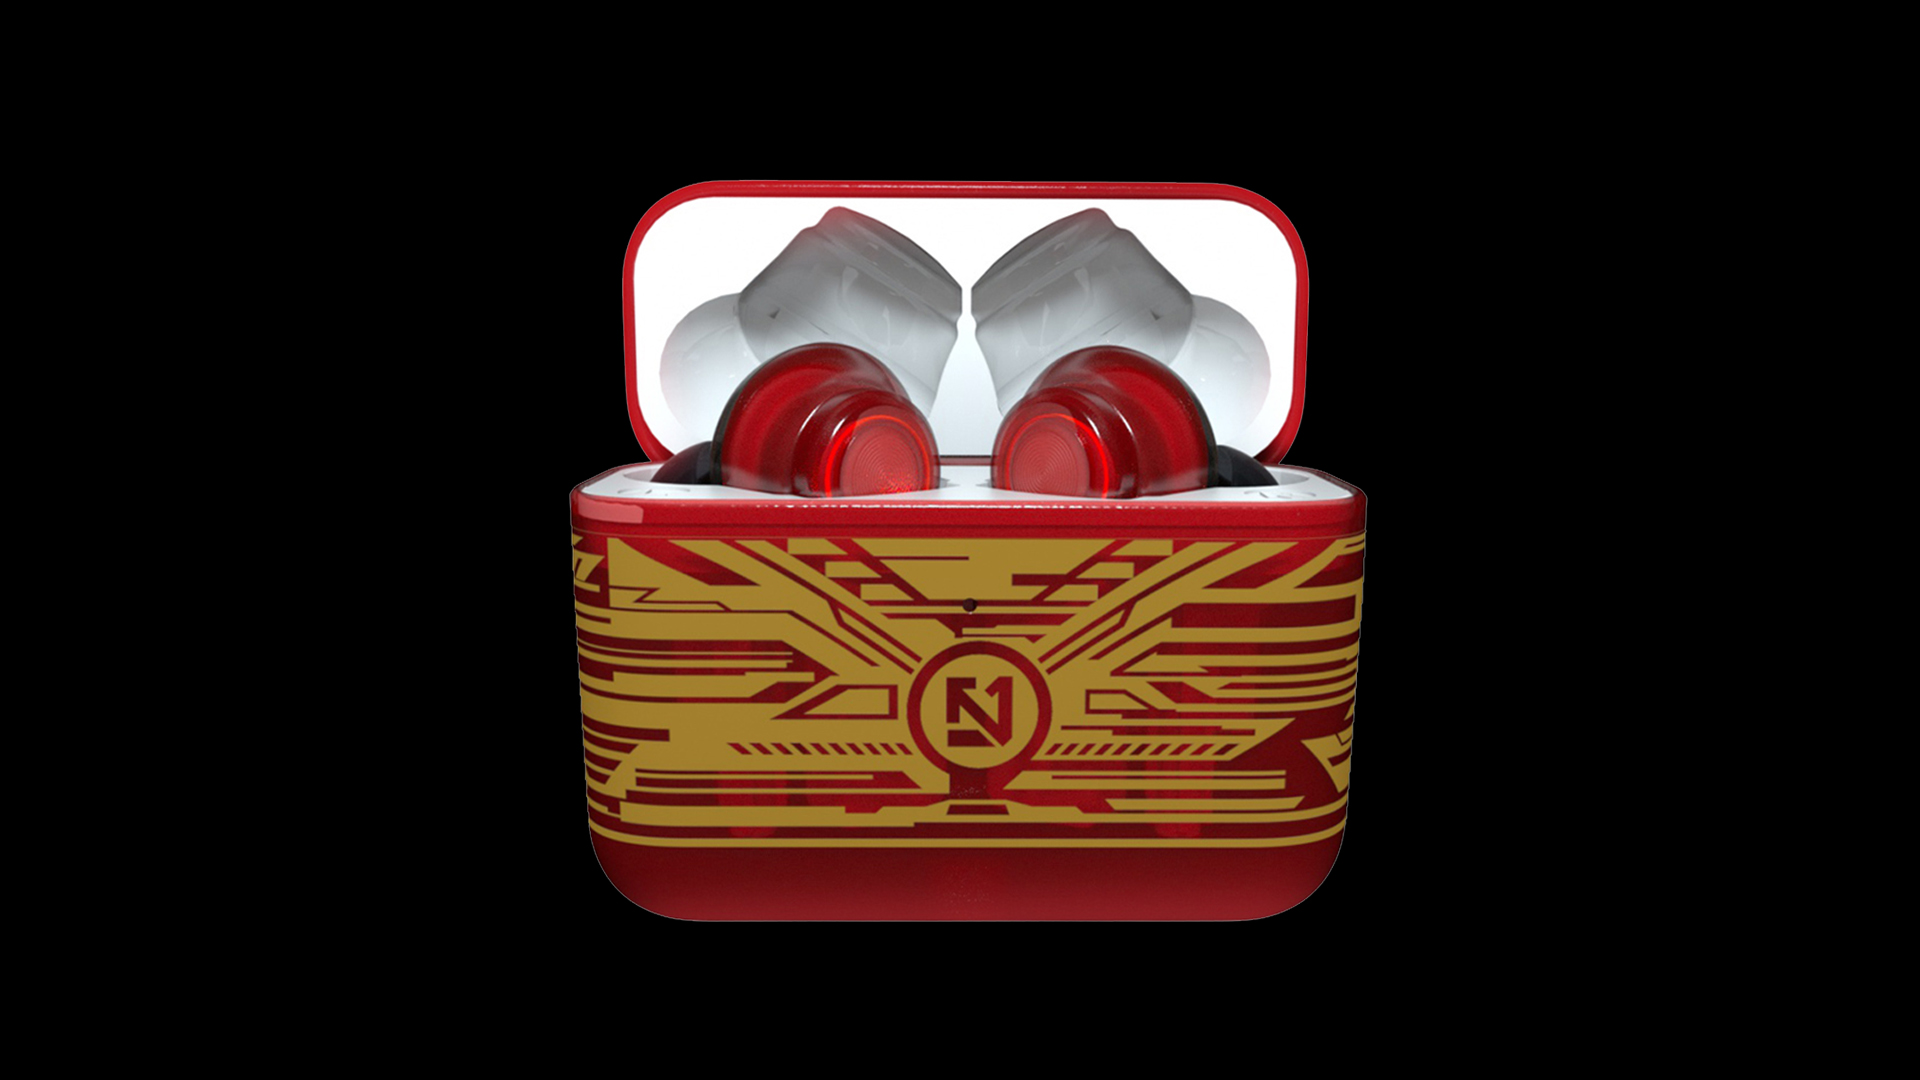 Best Wireless Earphone 9D Stereo True Wireless Earbud Gaming Headphones Touch Control In Ear Sport Headsets With Microphone Supplier